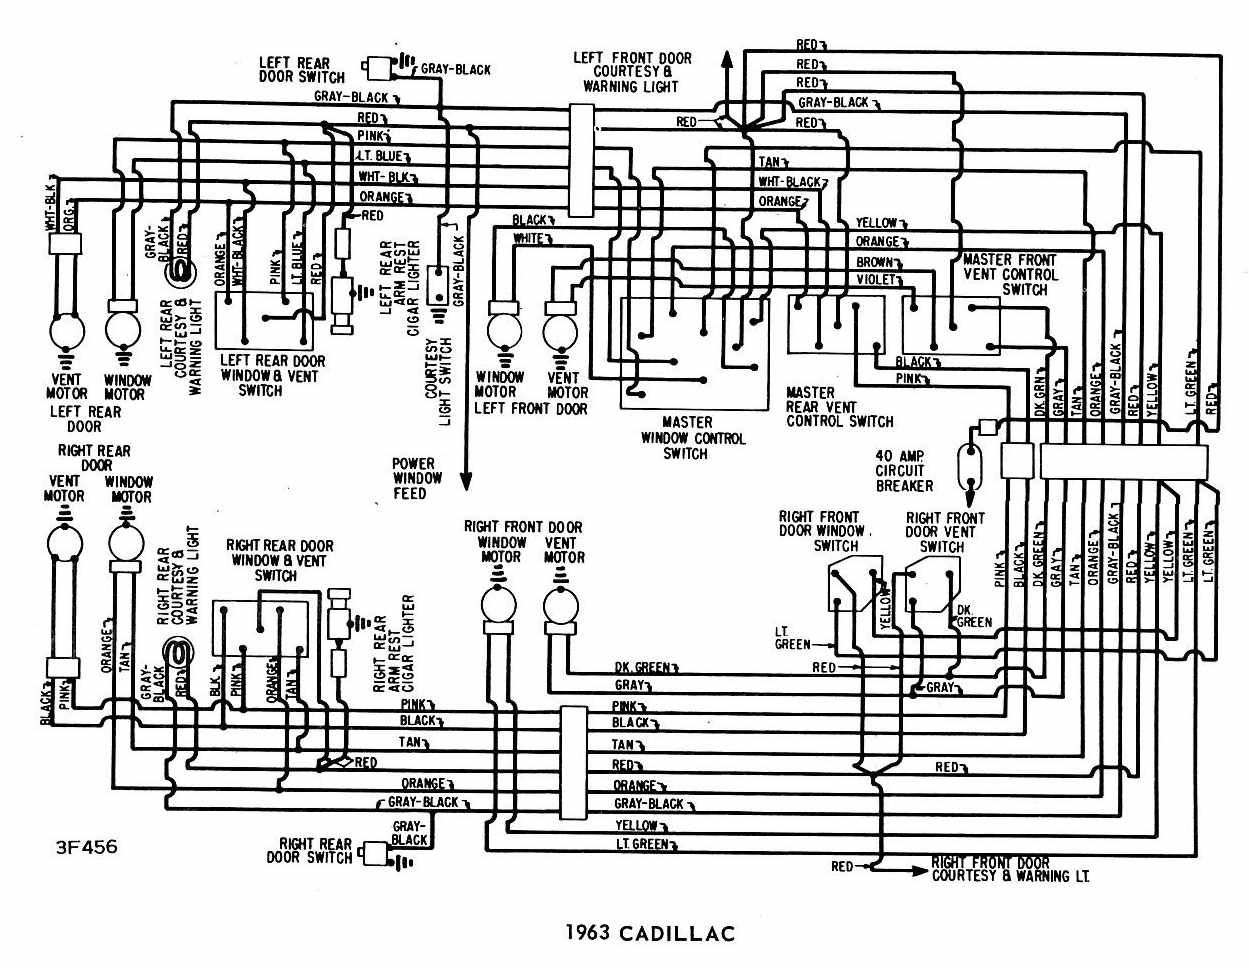 small resolution of 1962 cadillac wiring diagram wiring diagram name 1961 cadillac wiring diagram